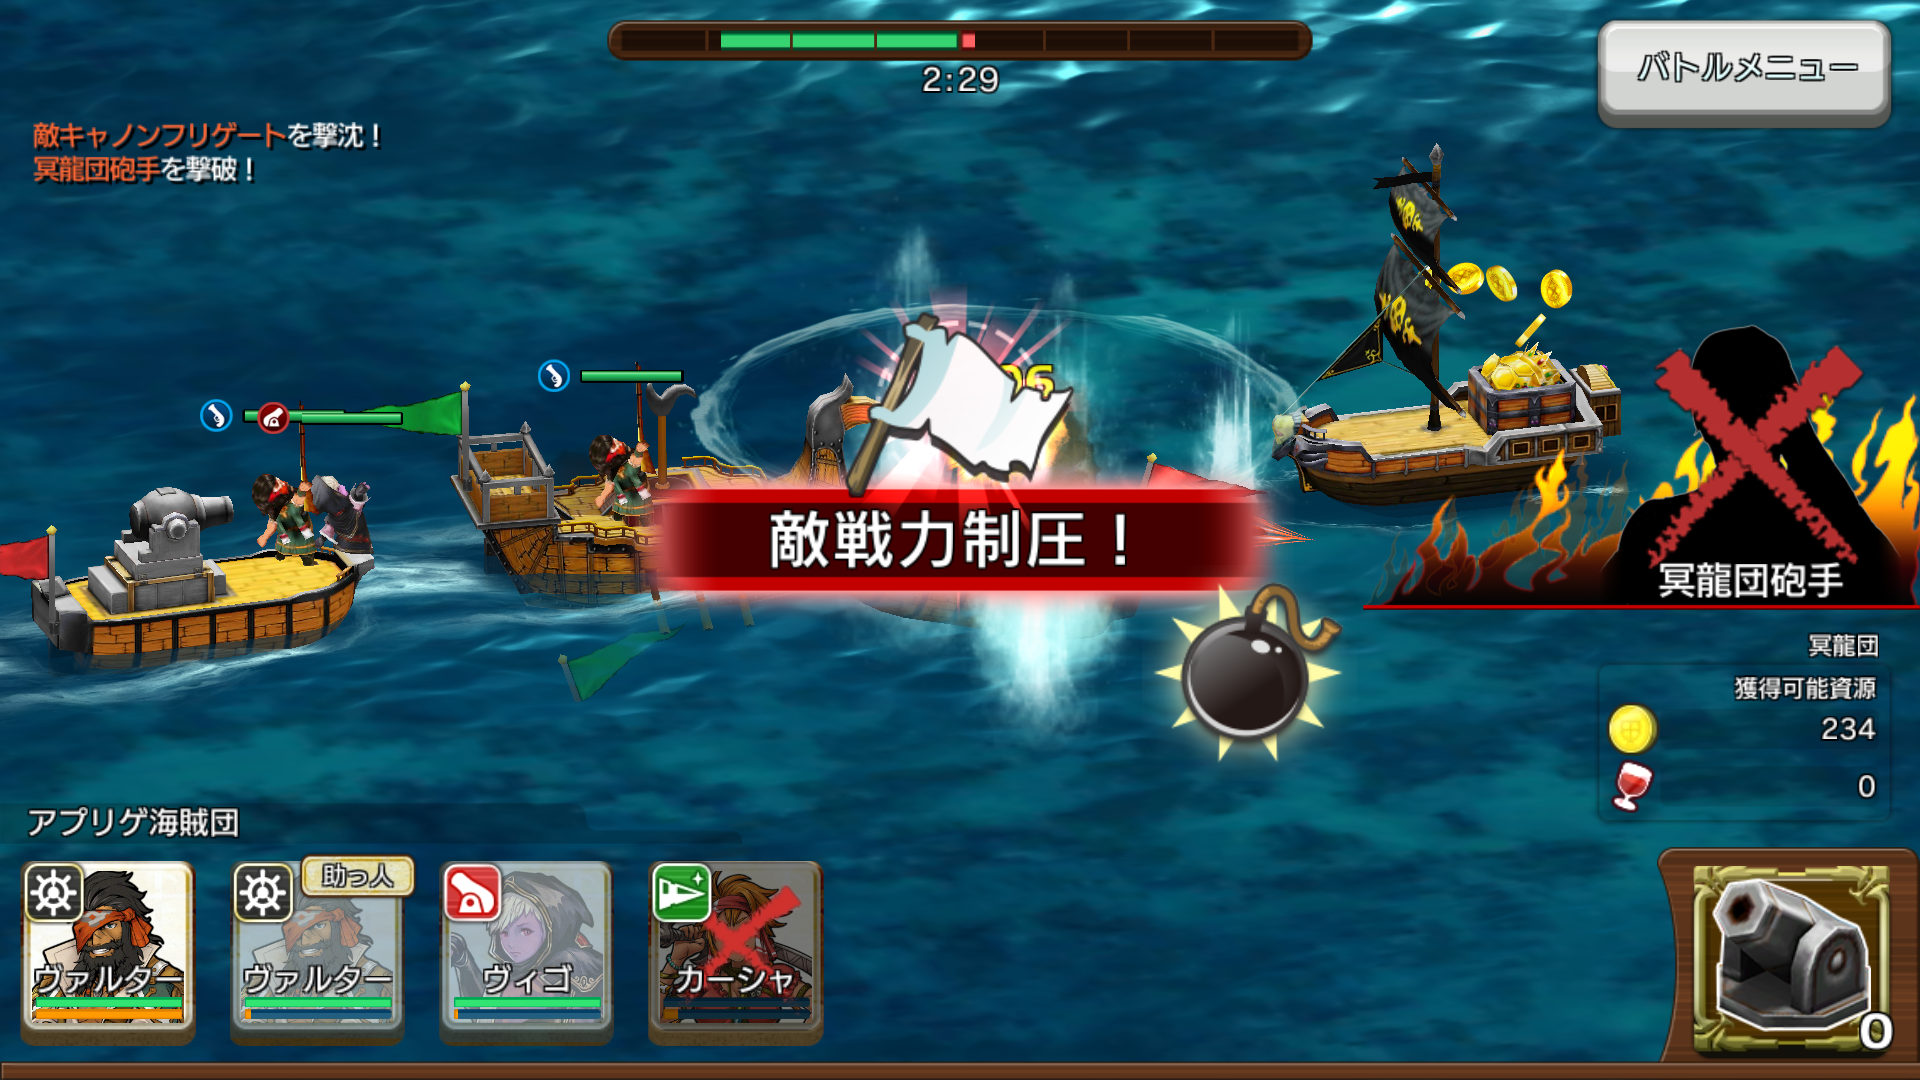 androidアプリ 戦の海賊(センノカ)攻略スクリーンショット4